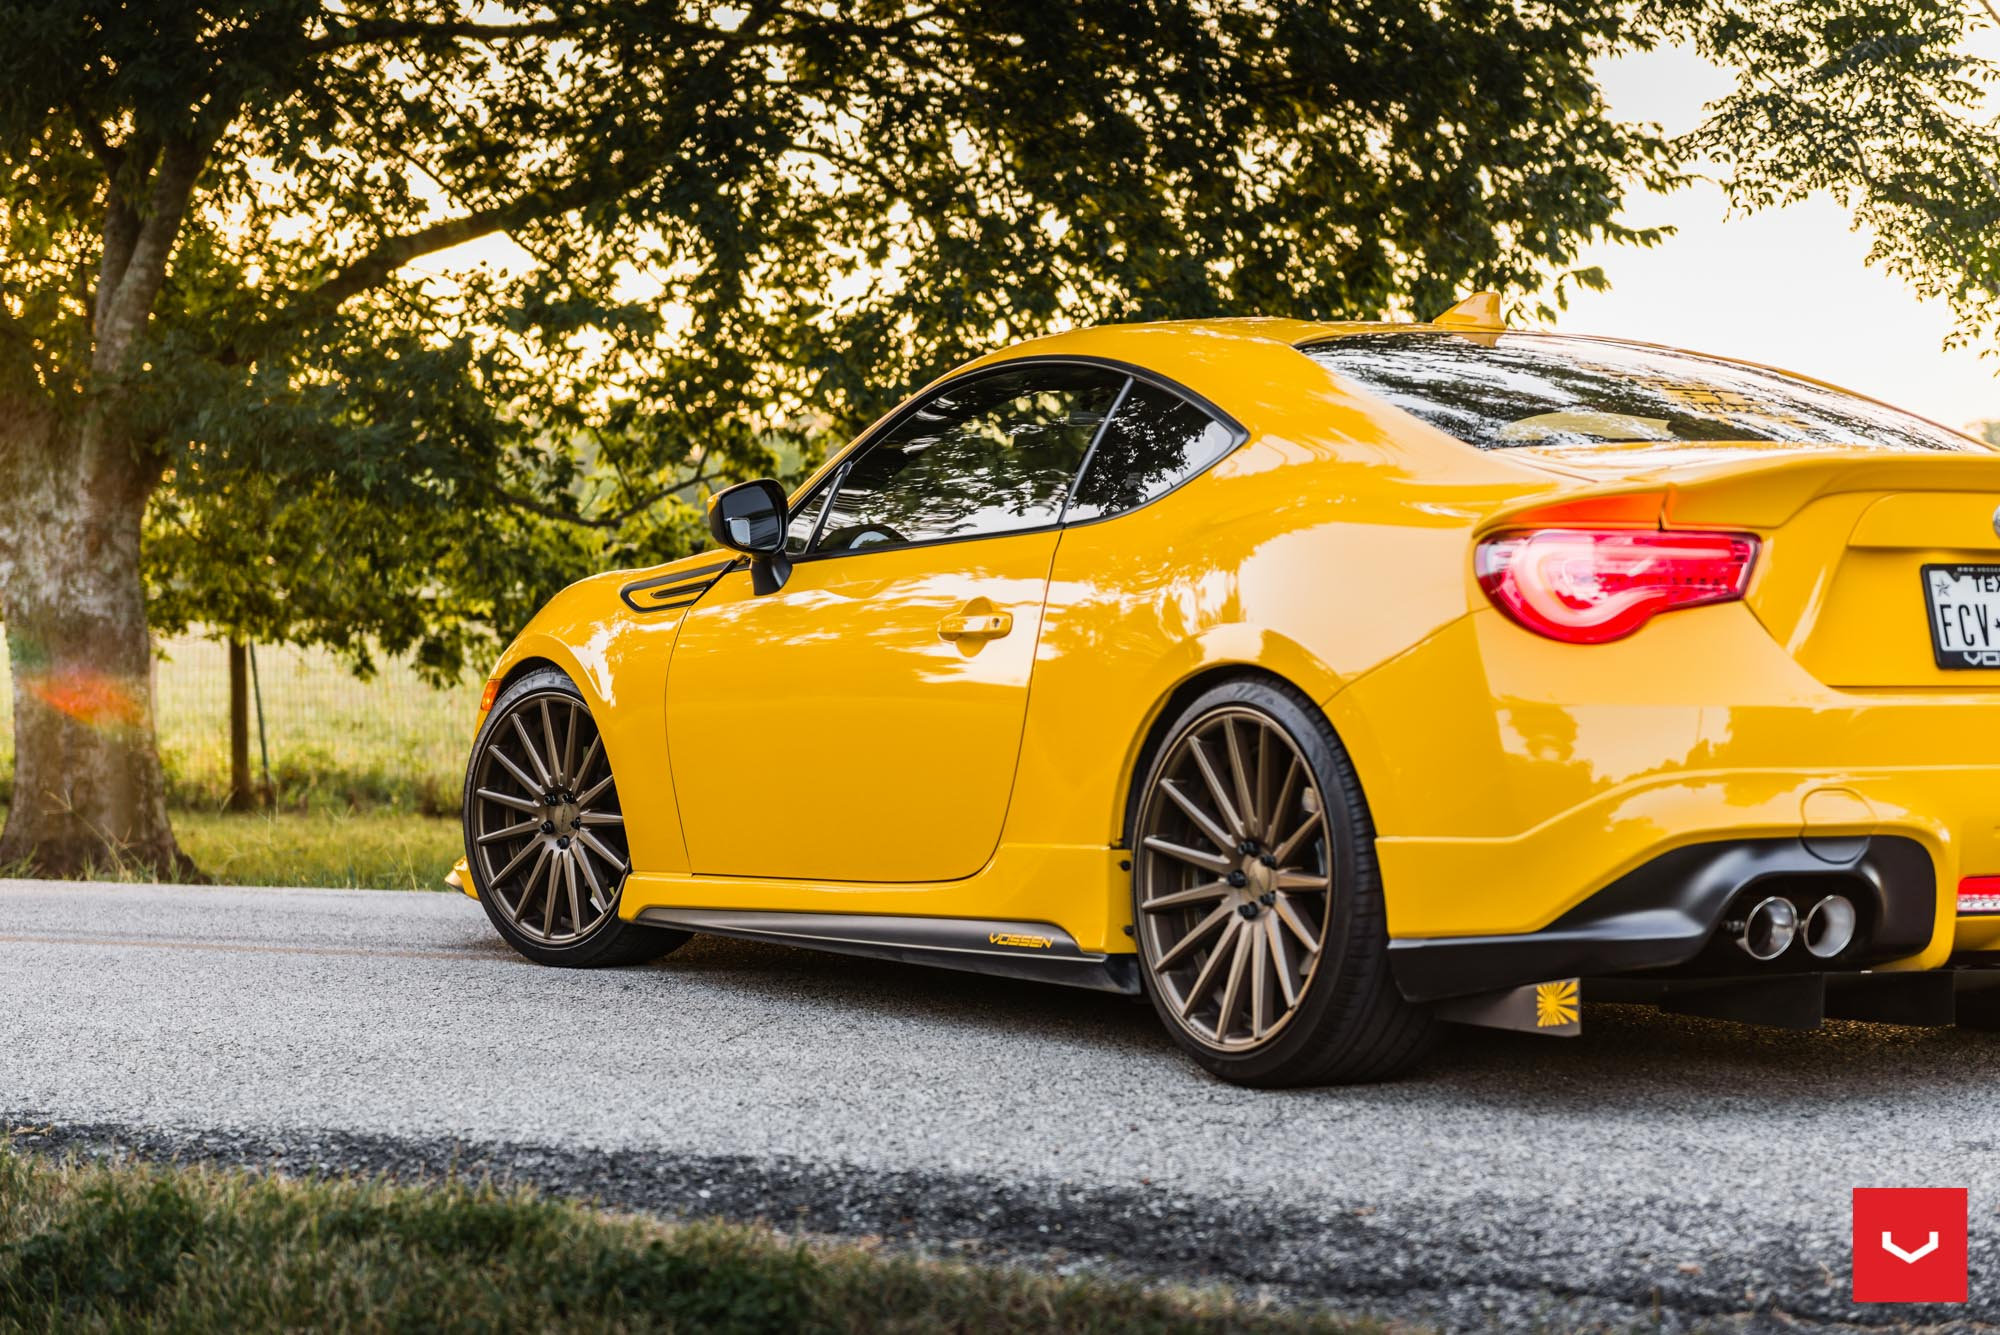 Gorgeous Rocket Bunny Scion FR-S Goes for a Night Drive ...